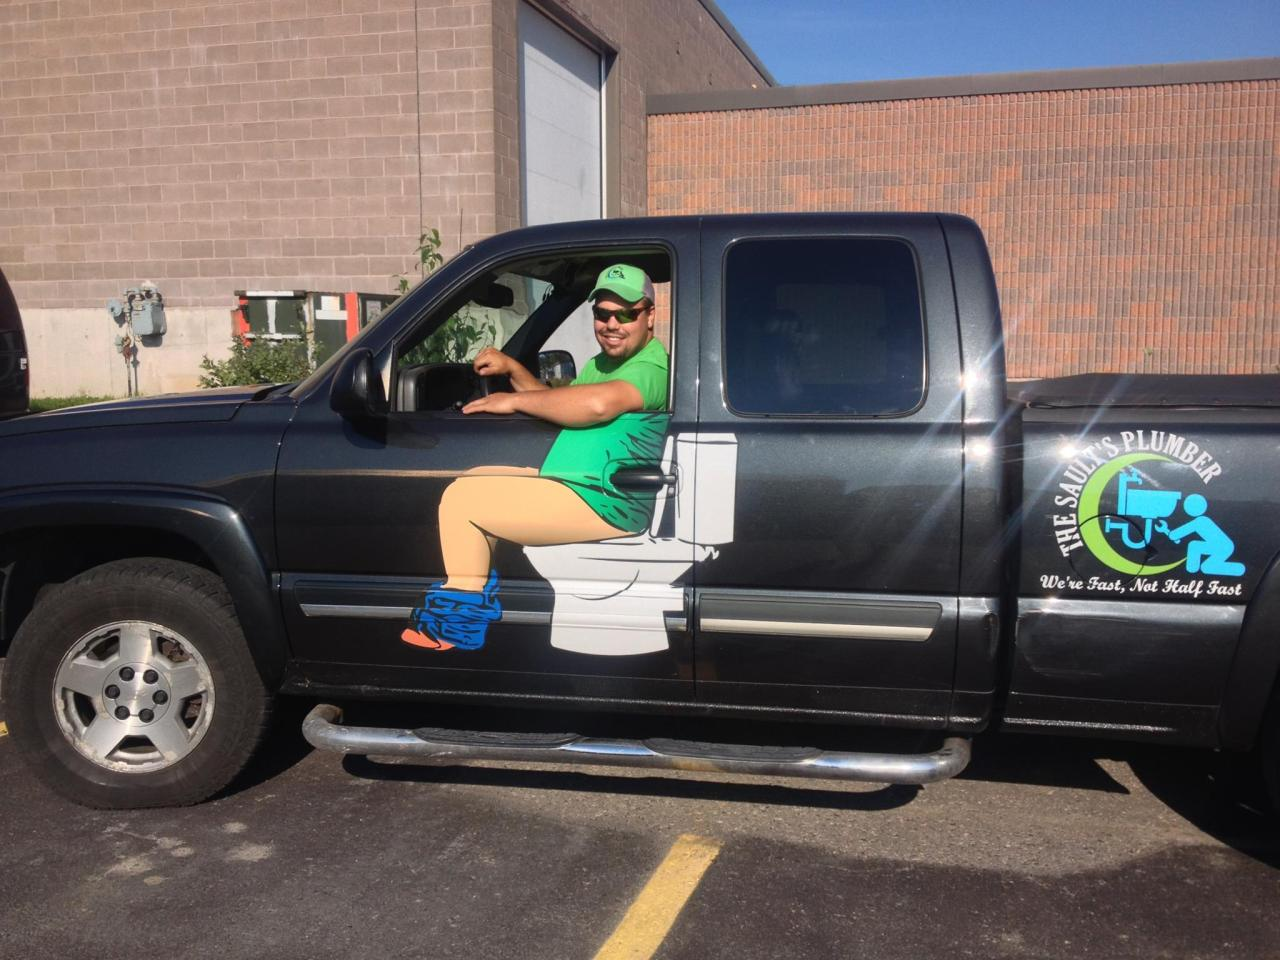 Pop A Squat Canadian Plumber S Attention Getting Truck Design Goes Viral Wttv Cbs4indy